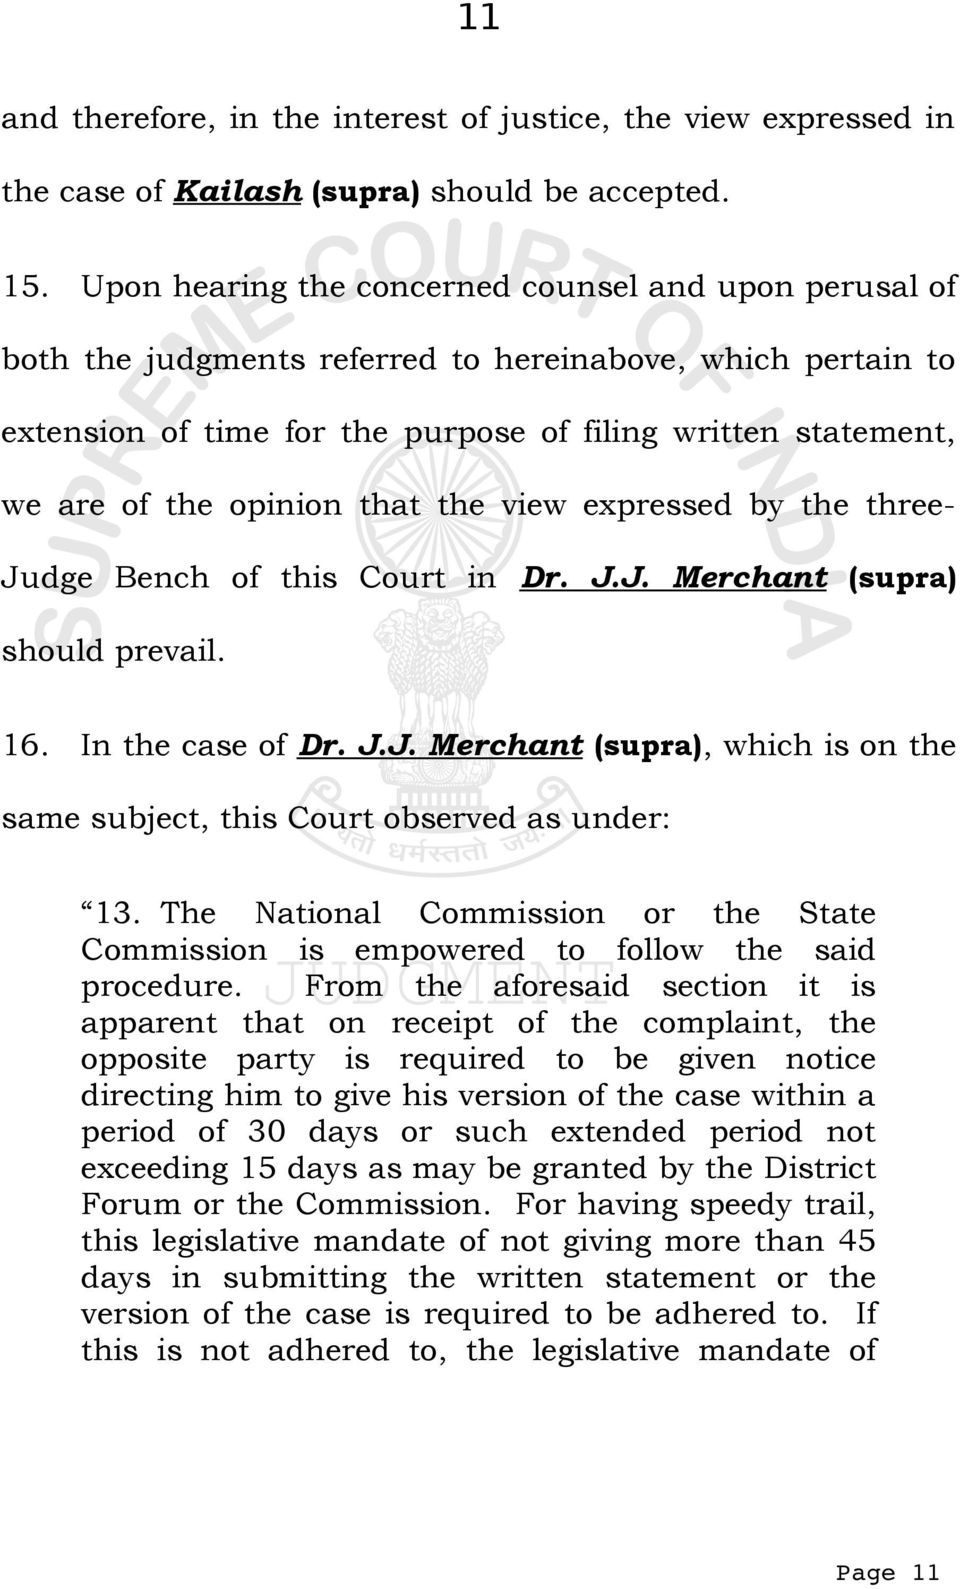 opinion that the view expressed by the three- Judge Bench of this Court in Dr. J.J. Merchant (supra) should prevail. 16. In the case of Dr. J.J. Merchant (supra), which is on the same subject, this Court observed as under: 13.